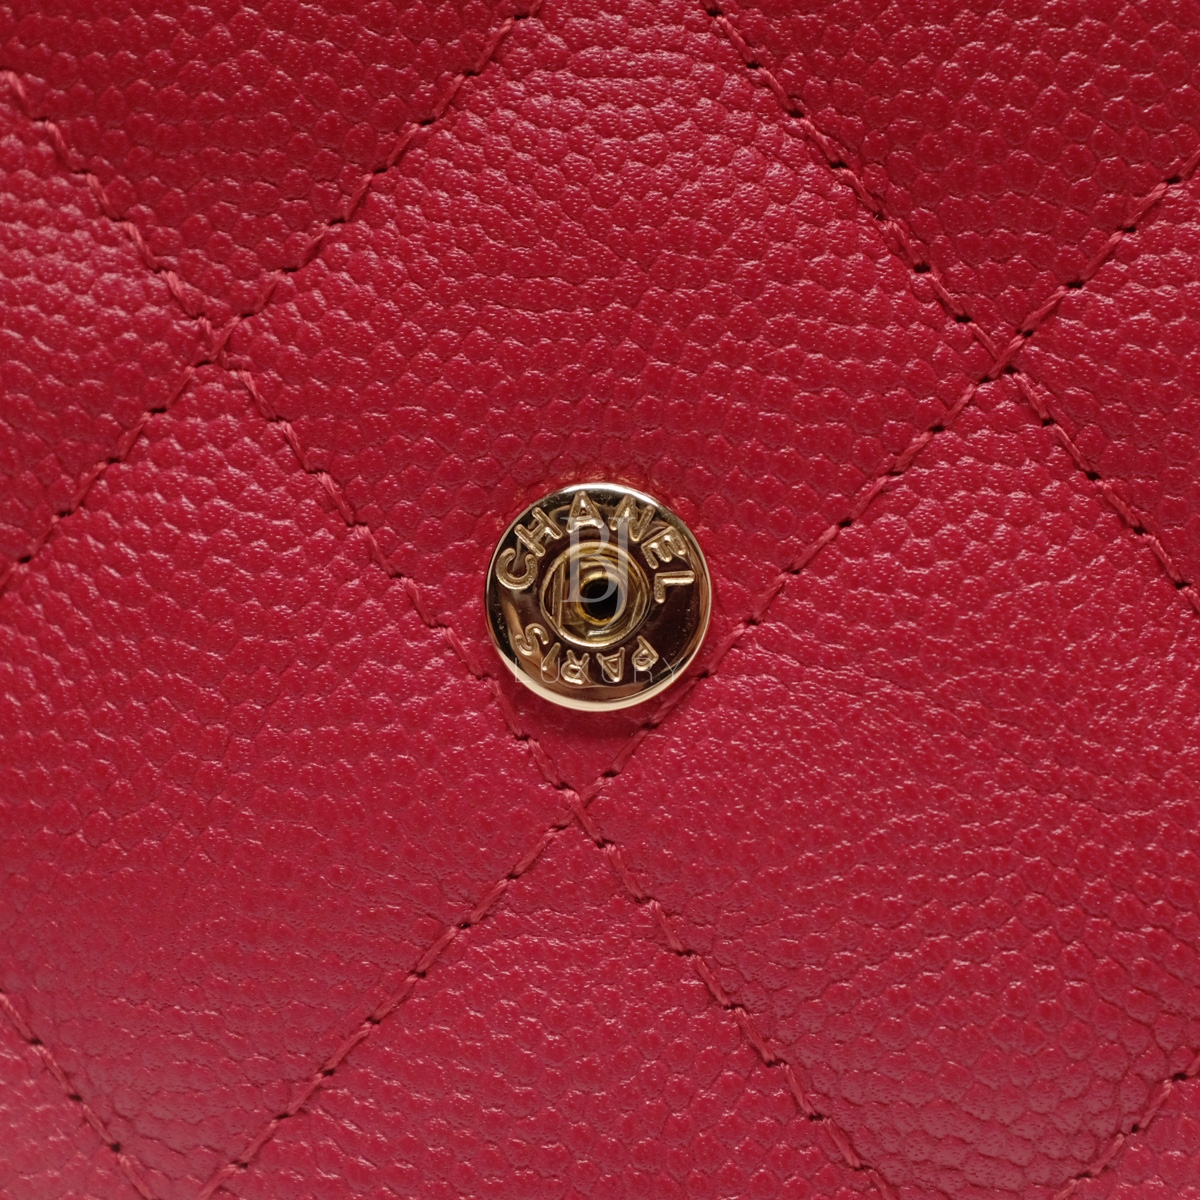 Chanel Wallet On Chain Red Caviar Brushed Gold BJ Luxury 14.jpg